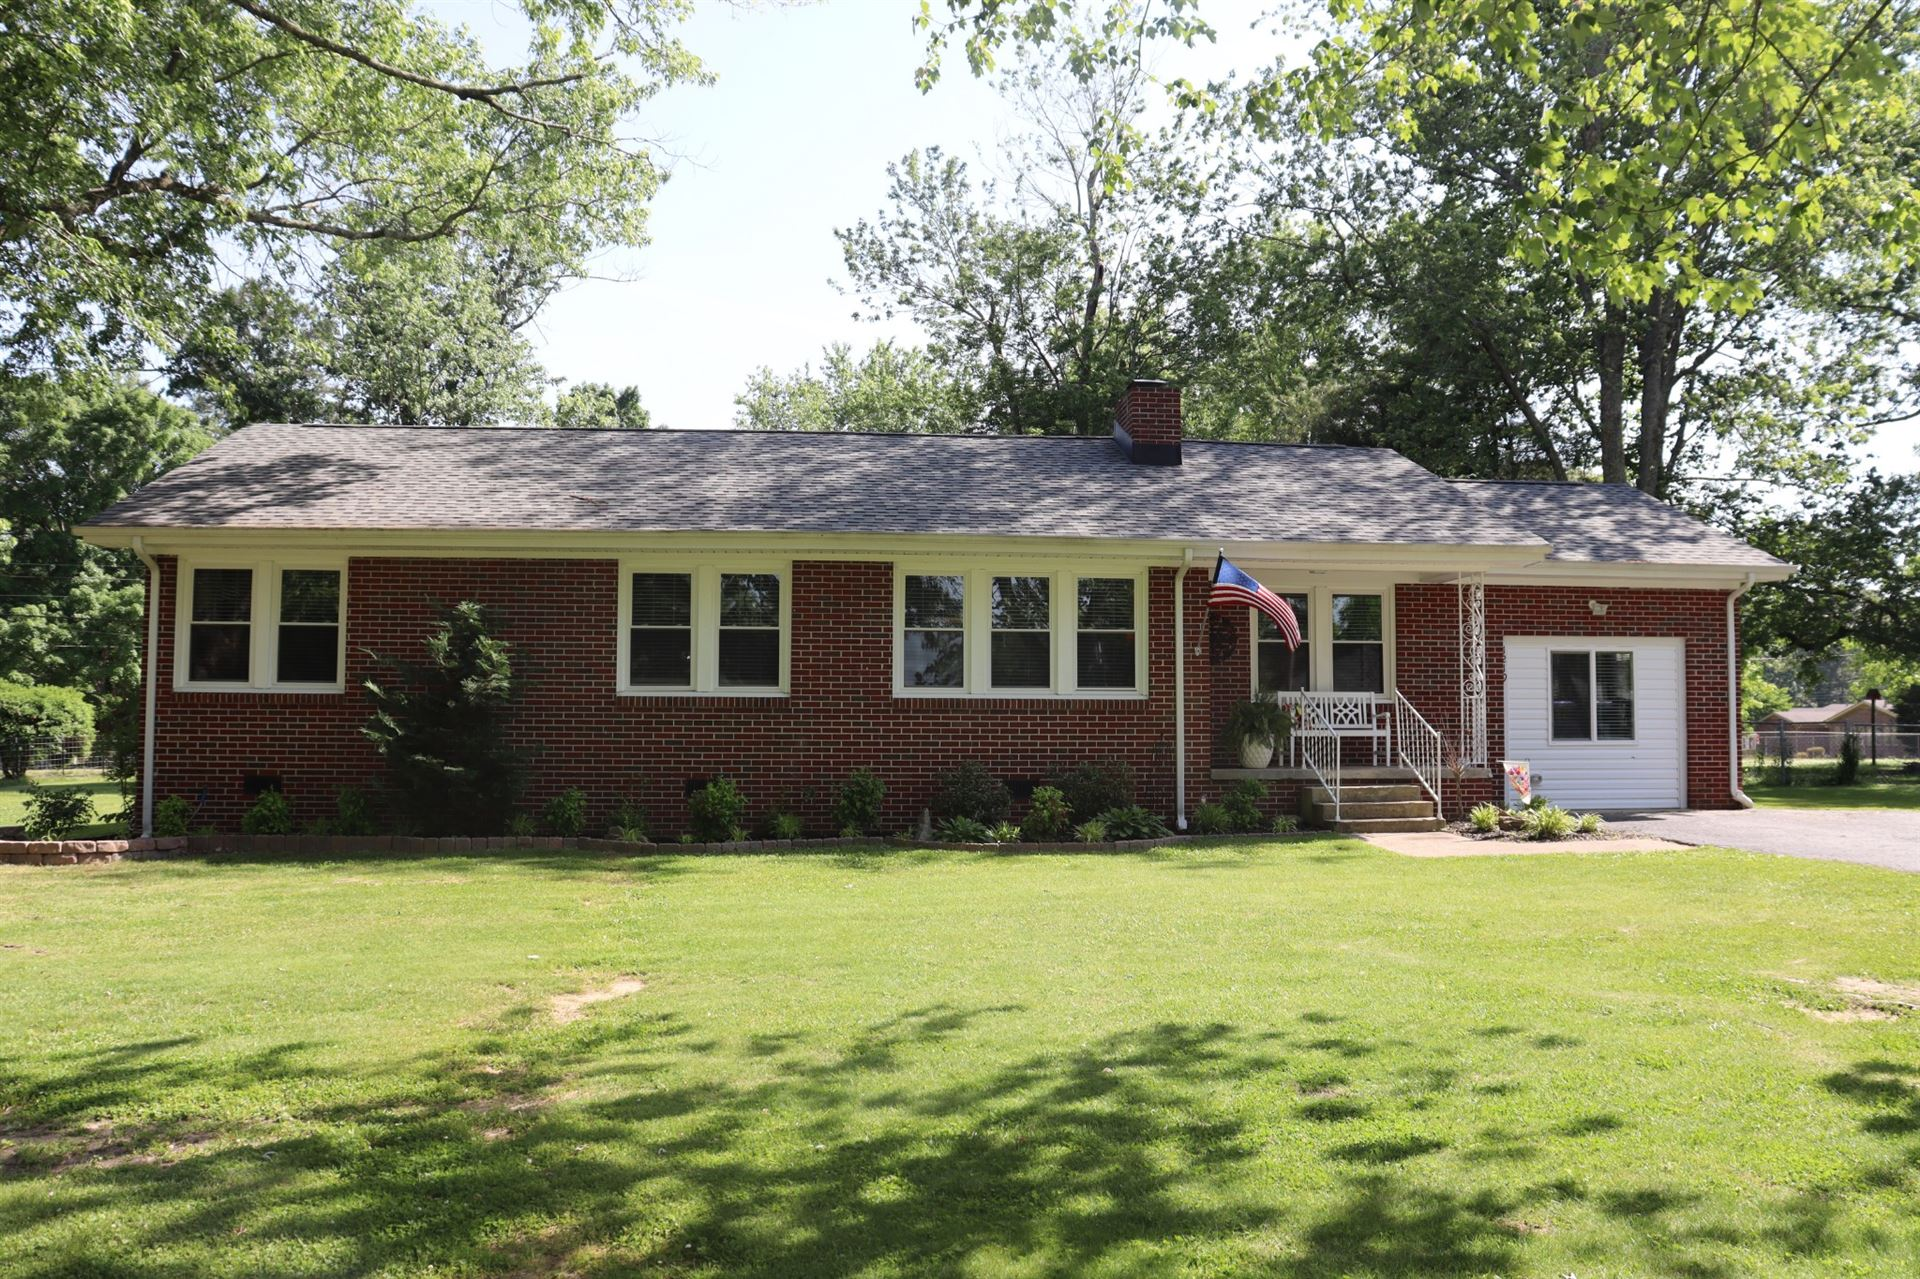 1219 Bel Aire Dr, Tullahoma, TN 37388 - MLS#: 2255969